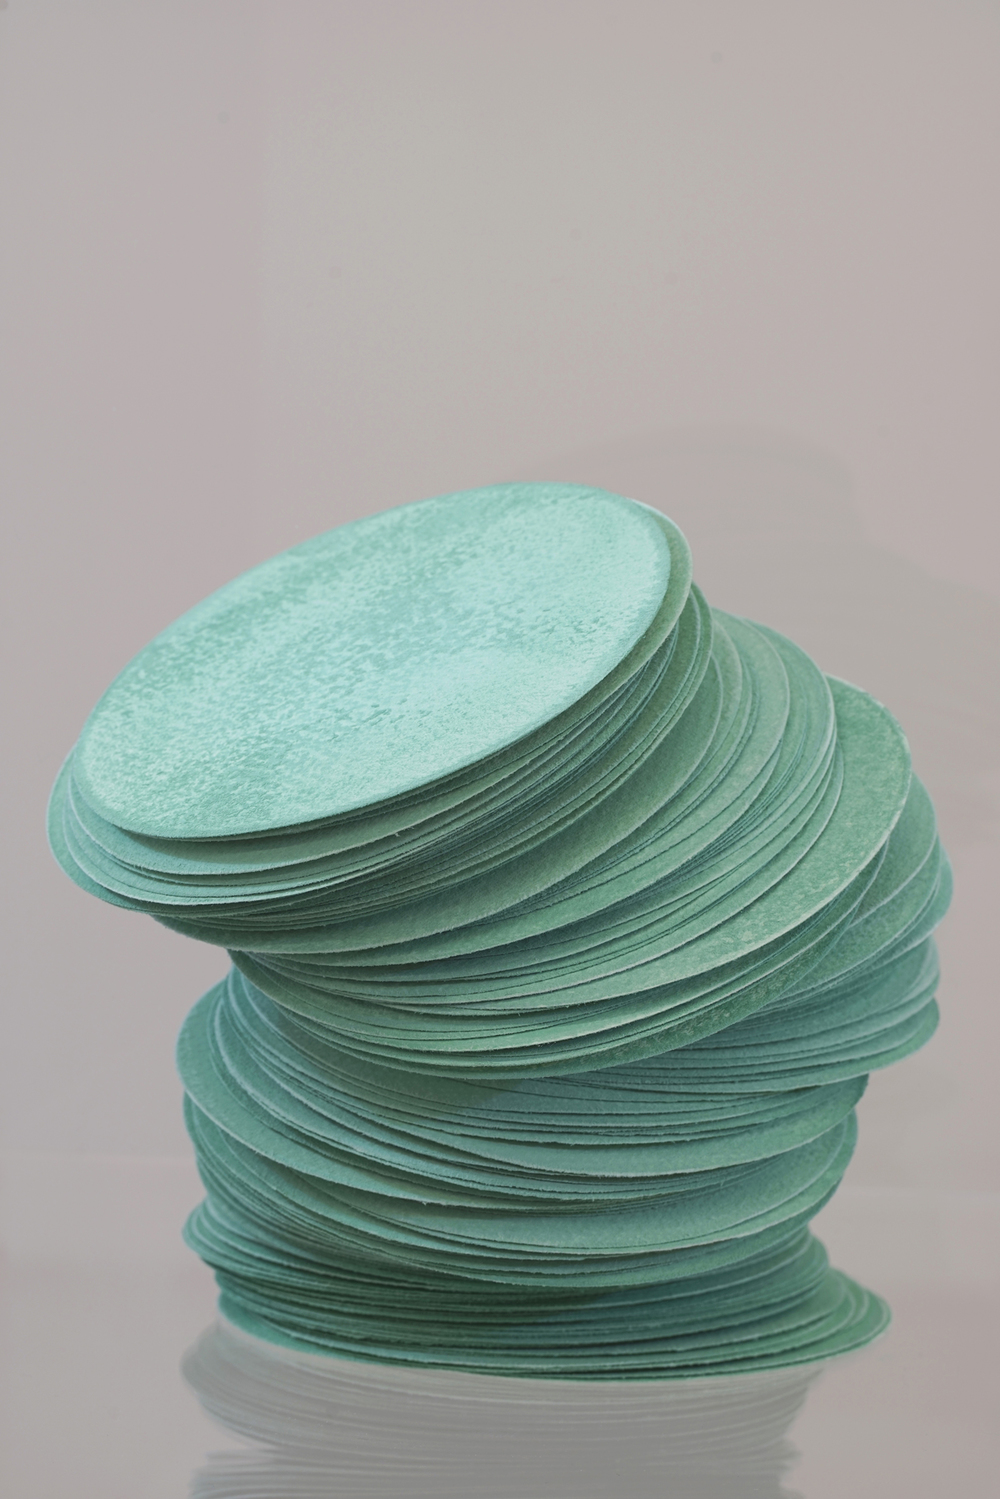 Grace TAN  n. 326 - carbonation  2015 Acid-free cotton pulp watercolour paper, Matsurokusho (malachite mineral pigment), archival EVA glue and nikawa (cow hide glue) H20 x W20 x D20 cm (artwork) H133 x W35 x D35 cm (plinth and case)